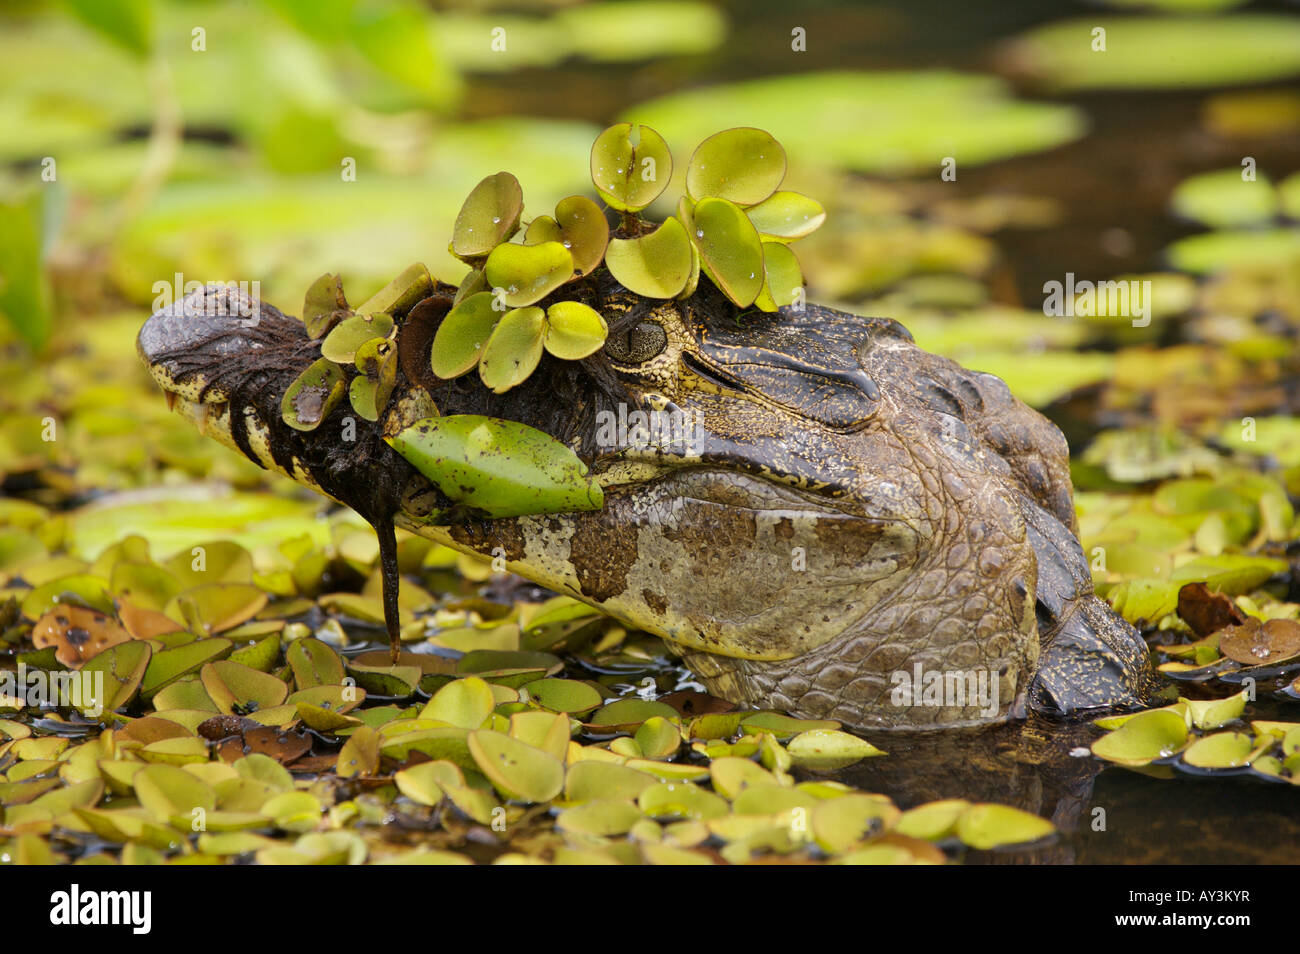 Yacare Caiman partially submerged among aquatic plants in the Pantanal Brazil - Stock Image